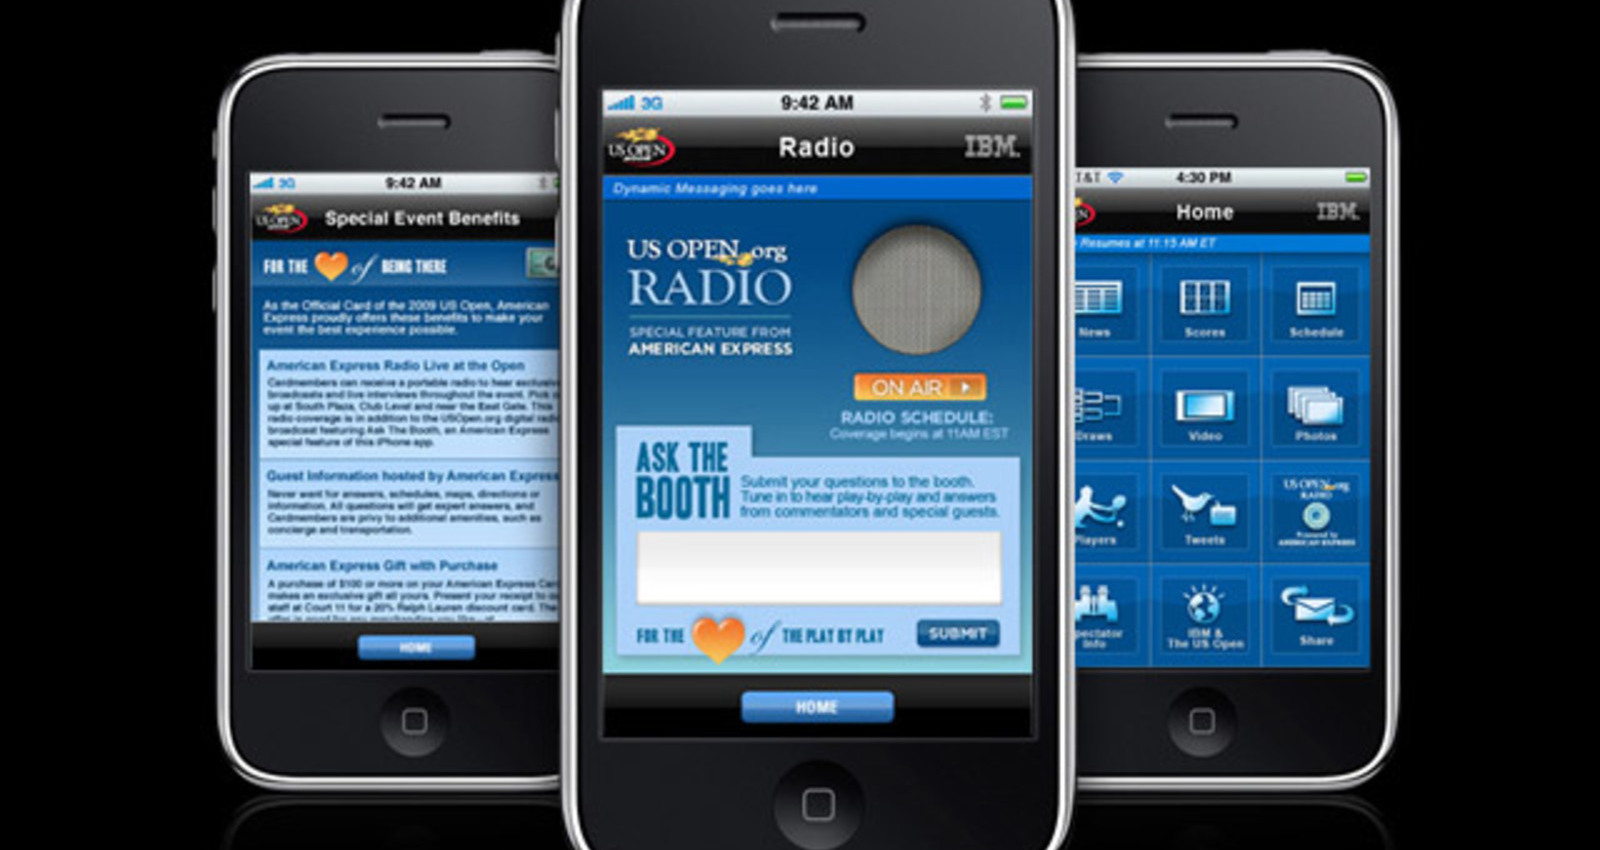 The Official 2009 US Open iPhone App